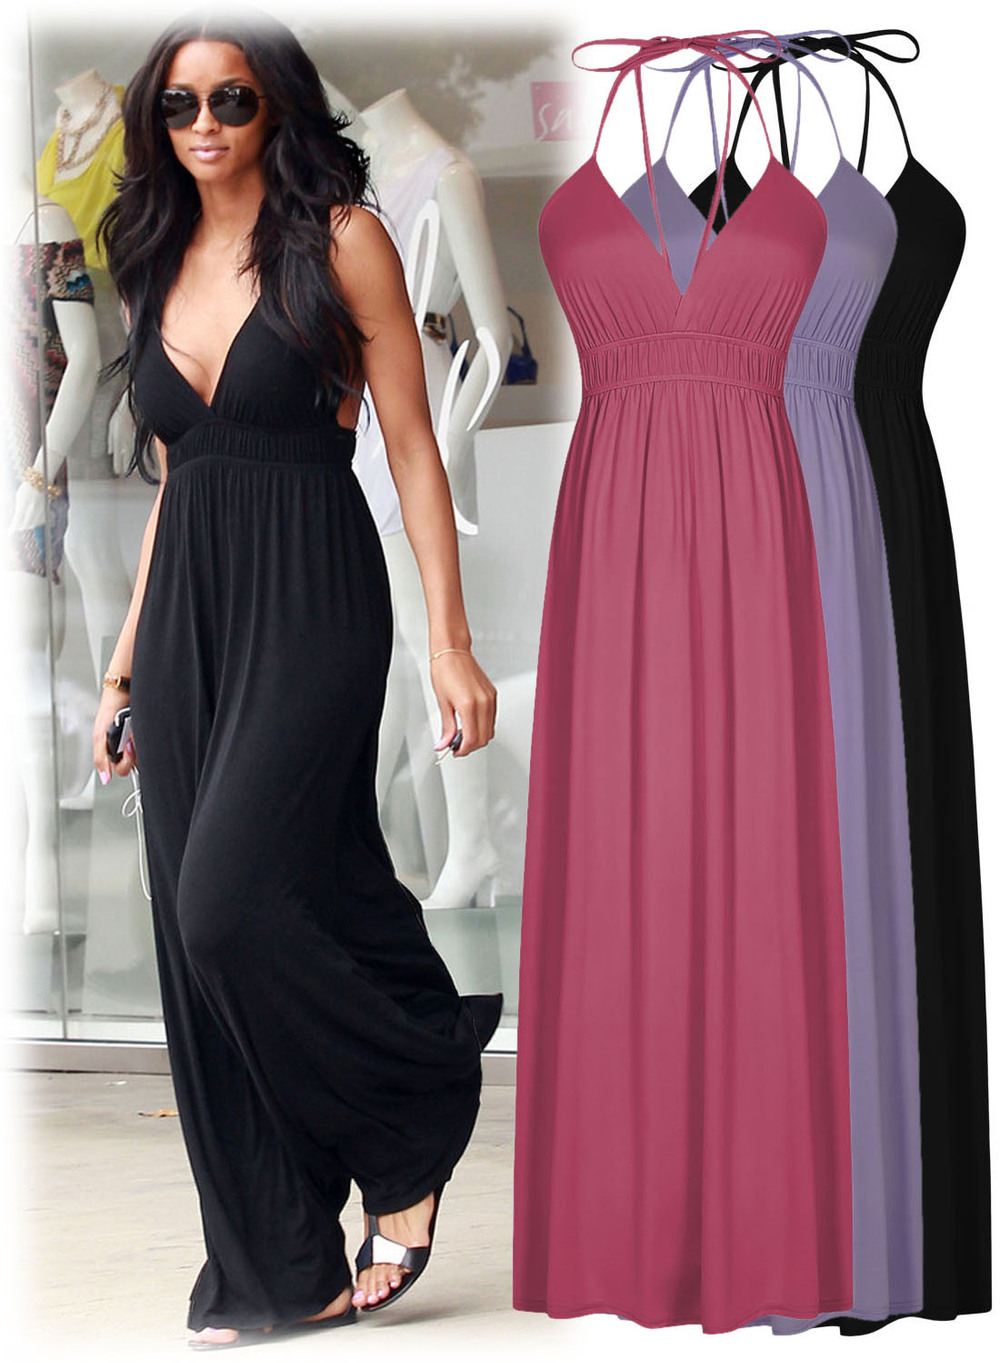 Compare Prices on Summer Sun Dresses- Online Shopping/Buy Low ...